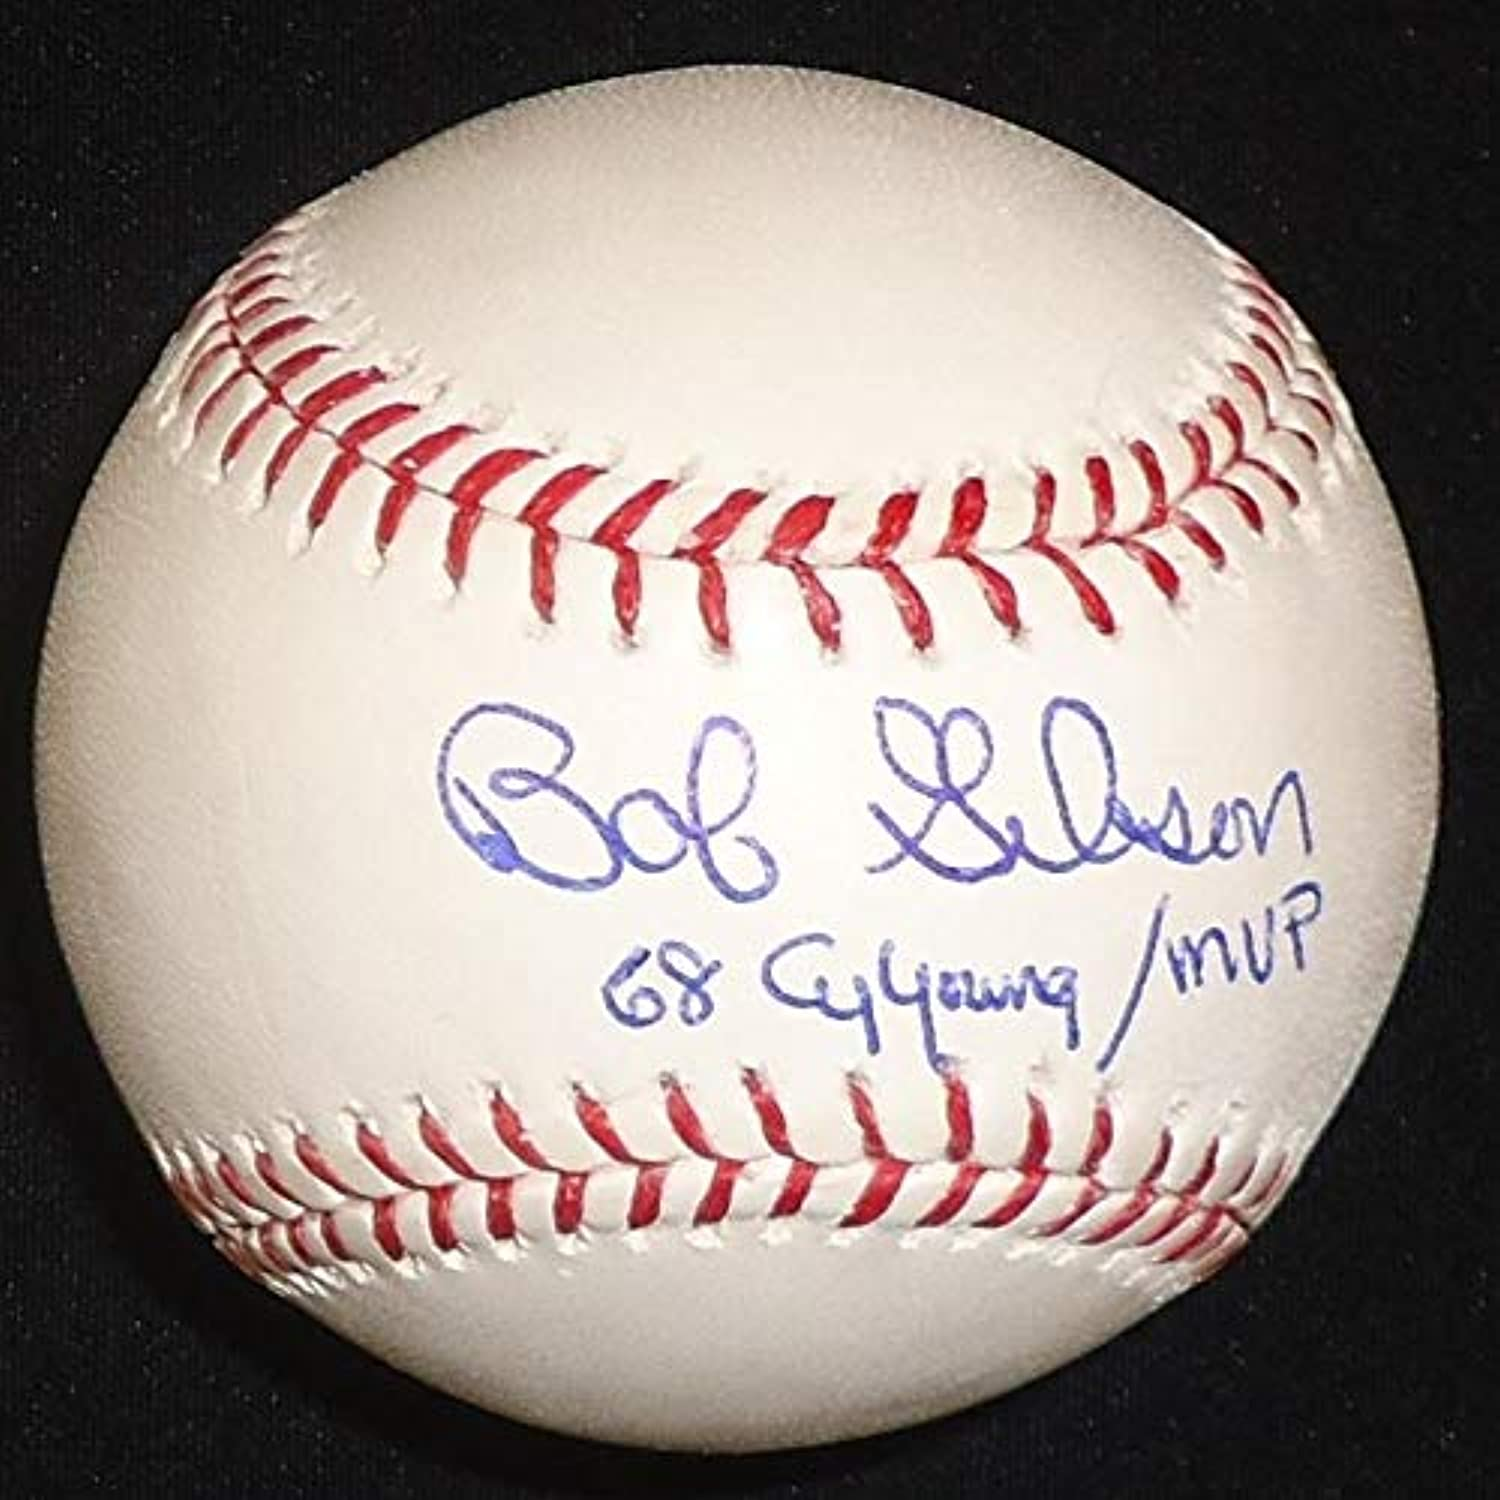 Bob Gibson Autographed Baseball  Official Major League Ball inscribed 68 Cy Young MVP  Autographed Baseballs